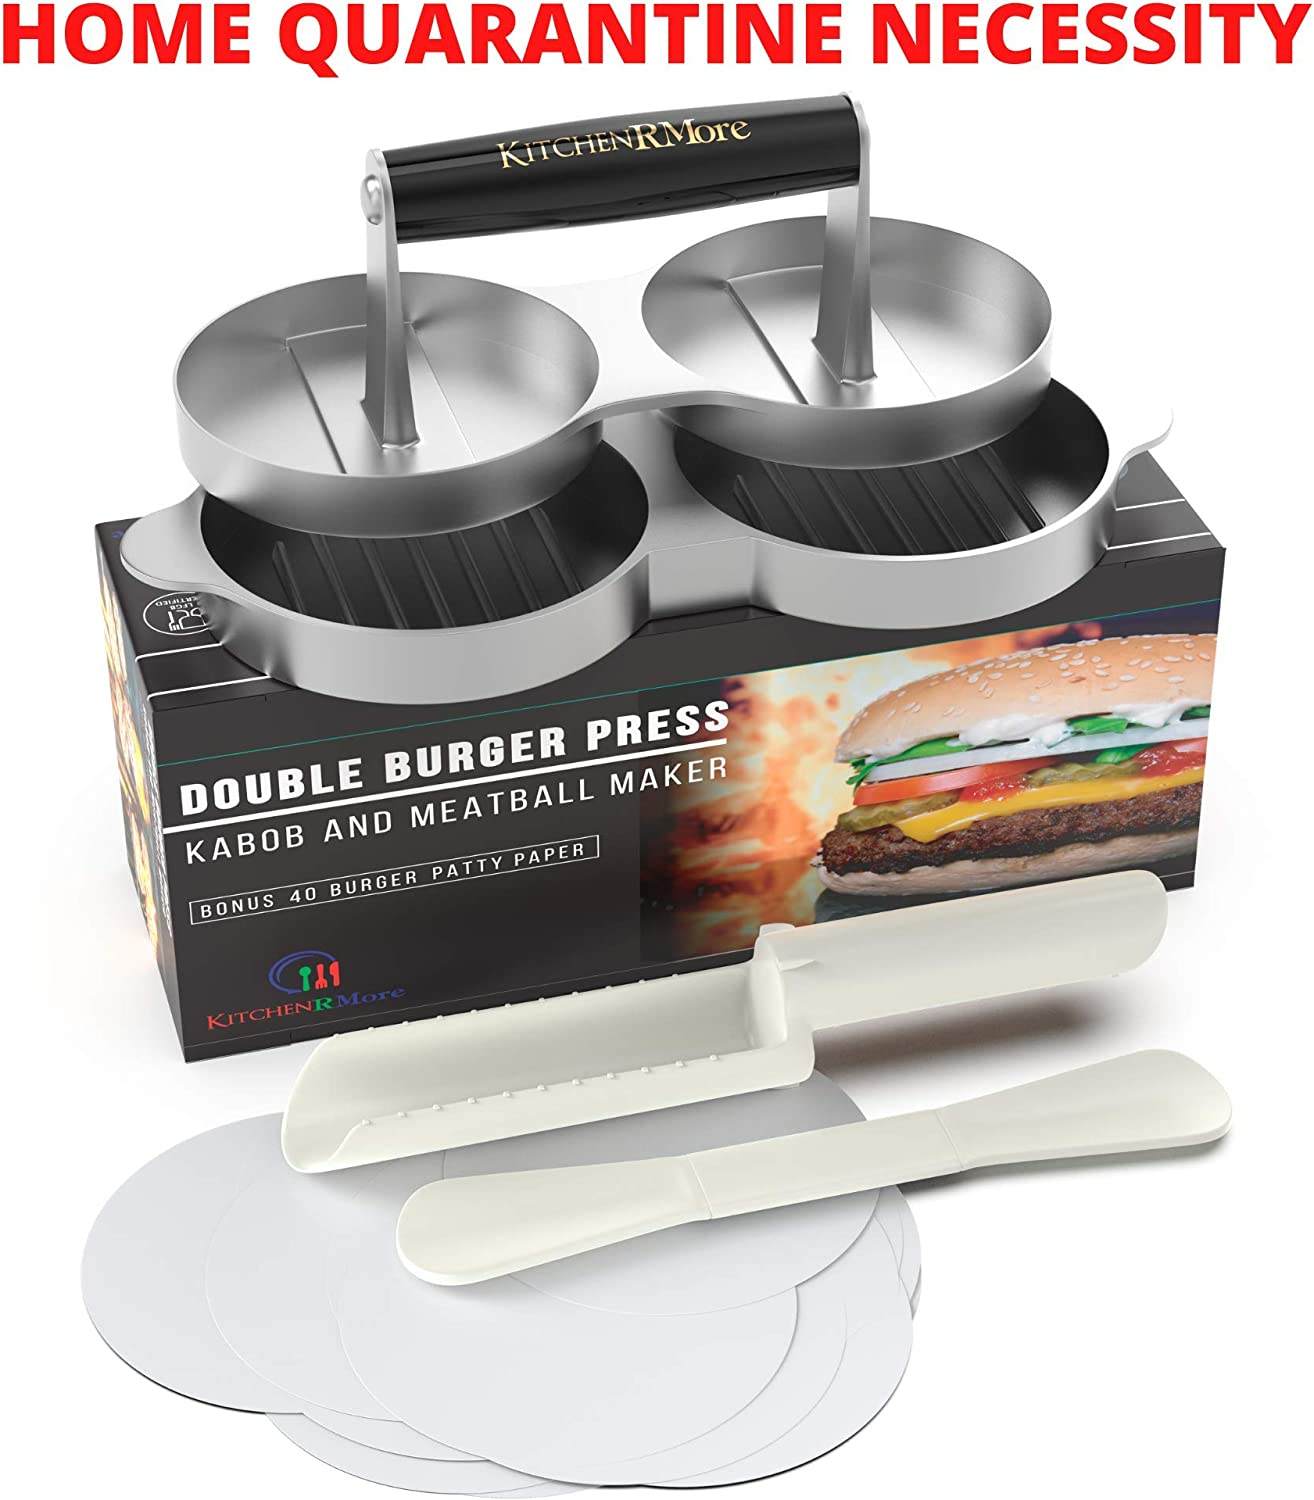 Kitchen RMore Double Burger Press + Kabob Maker + Meatball Shaper + 40 Patty Paper | Non-Stick Aluminum Hamburger Mold Grilling Accessories for Perfect Meat Patties, Veggie Burgers, Salmon Patties